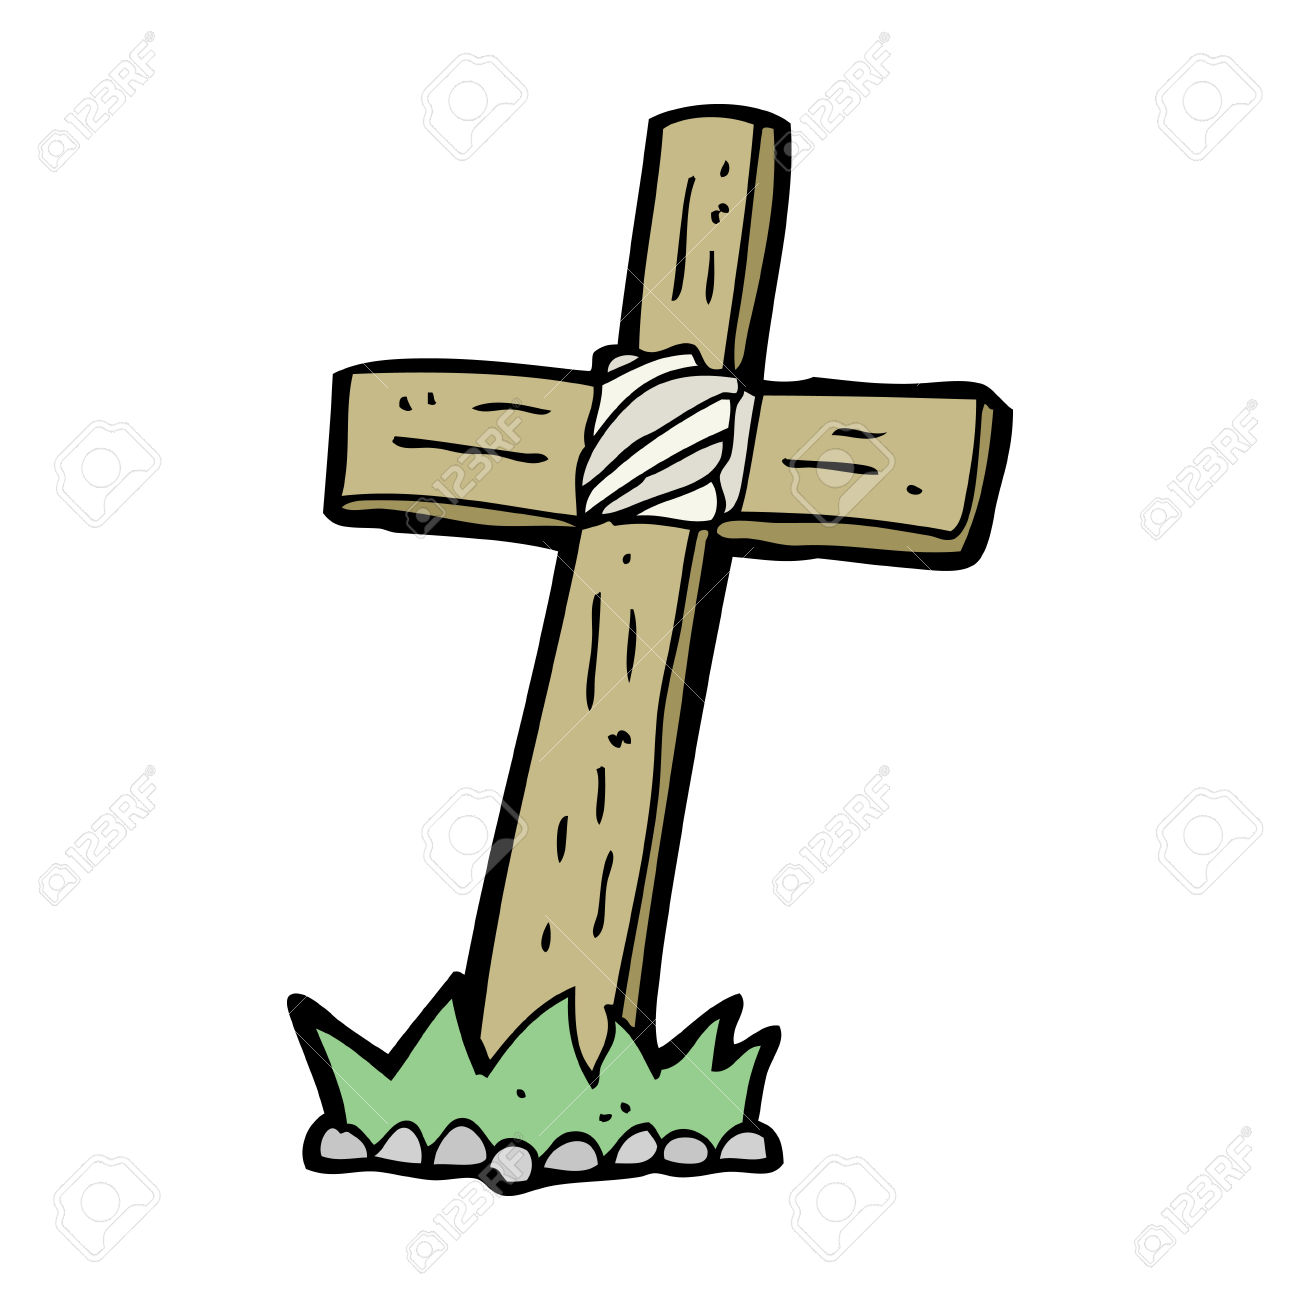 Cartoon Wooden Cross Grave Royalty Free Cliparts, Vectors, And.